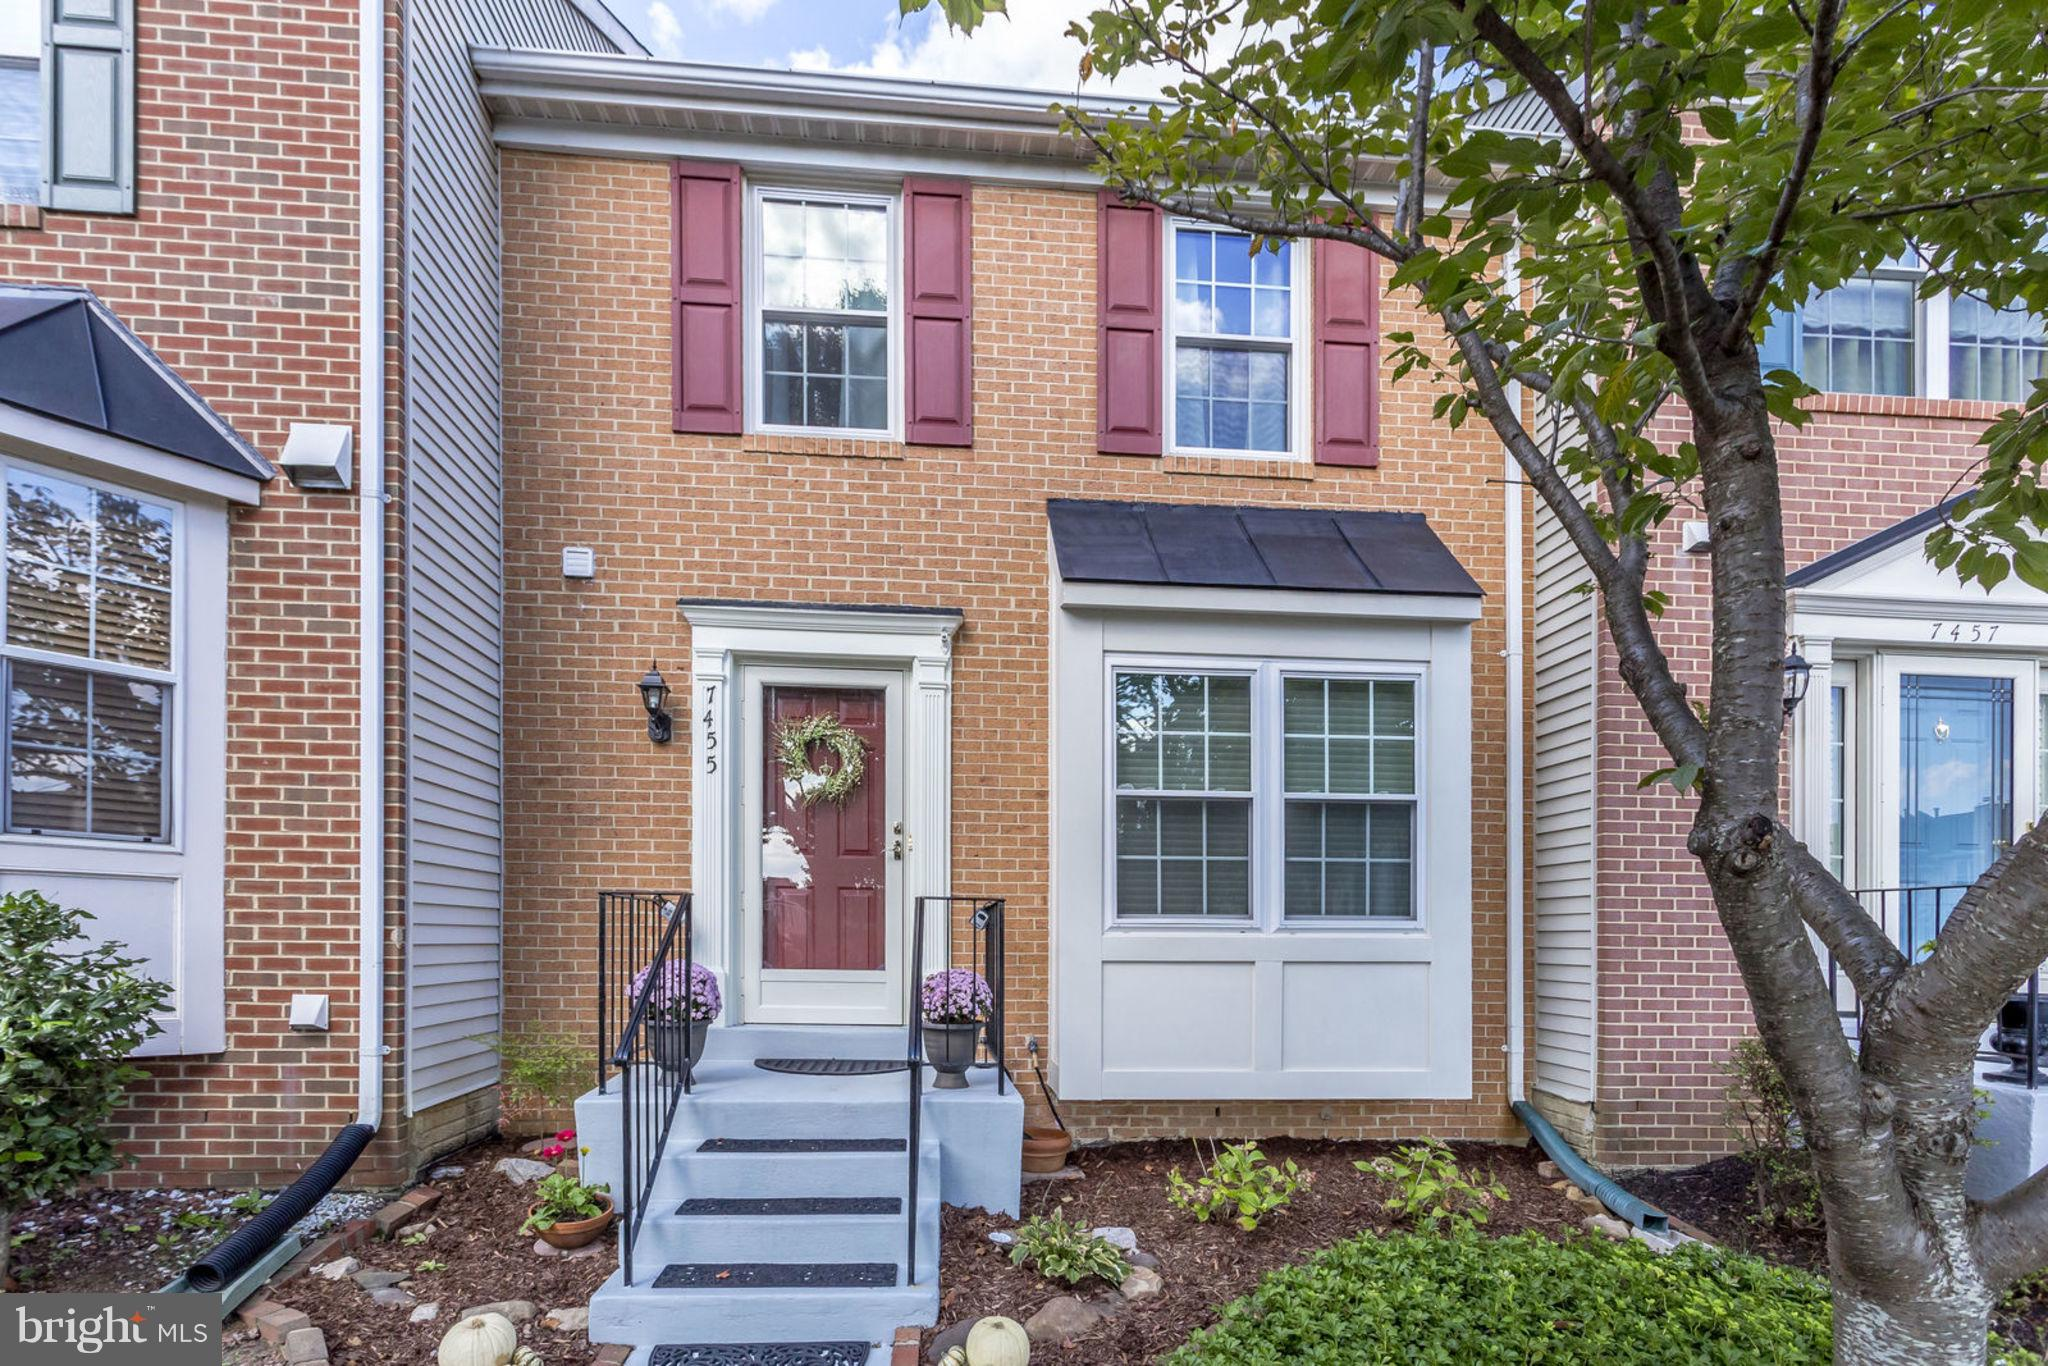 Beautiful 3 bd, 3.5 ba townhome in sought-after Kingstowne! Tastefully updated kitchen and baths, plus hardwood and tile throughout. Three bds upstairs, including master with en-suite. Vaulted ceilings and great open floor plan. Fully finished lower level with flex room, full bath, laundry room and living space with gas fireplace. Huge walkout multi-level deck for entertaining! A must-see!